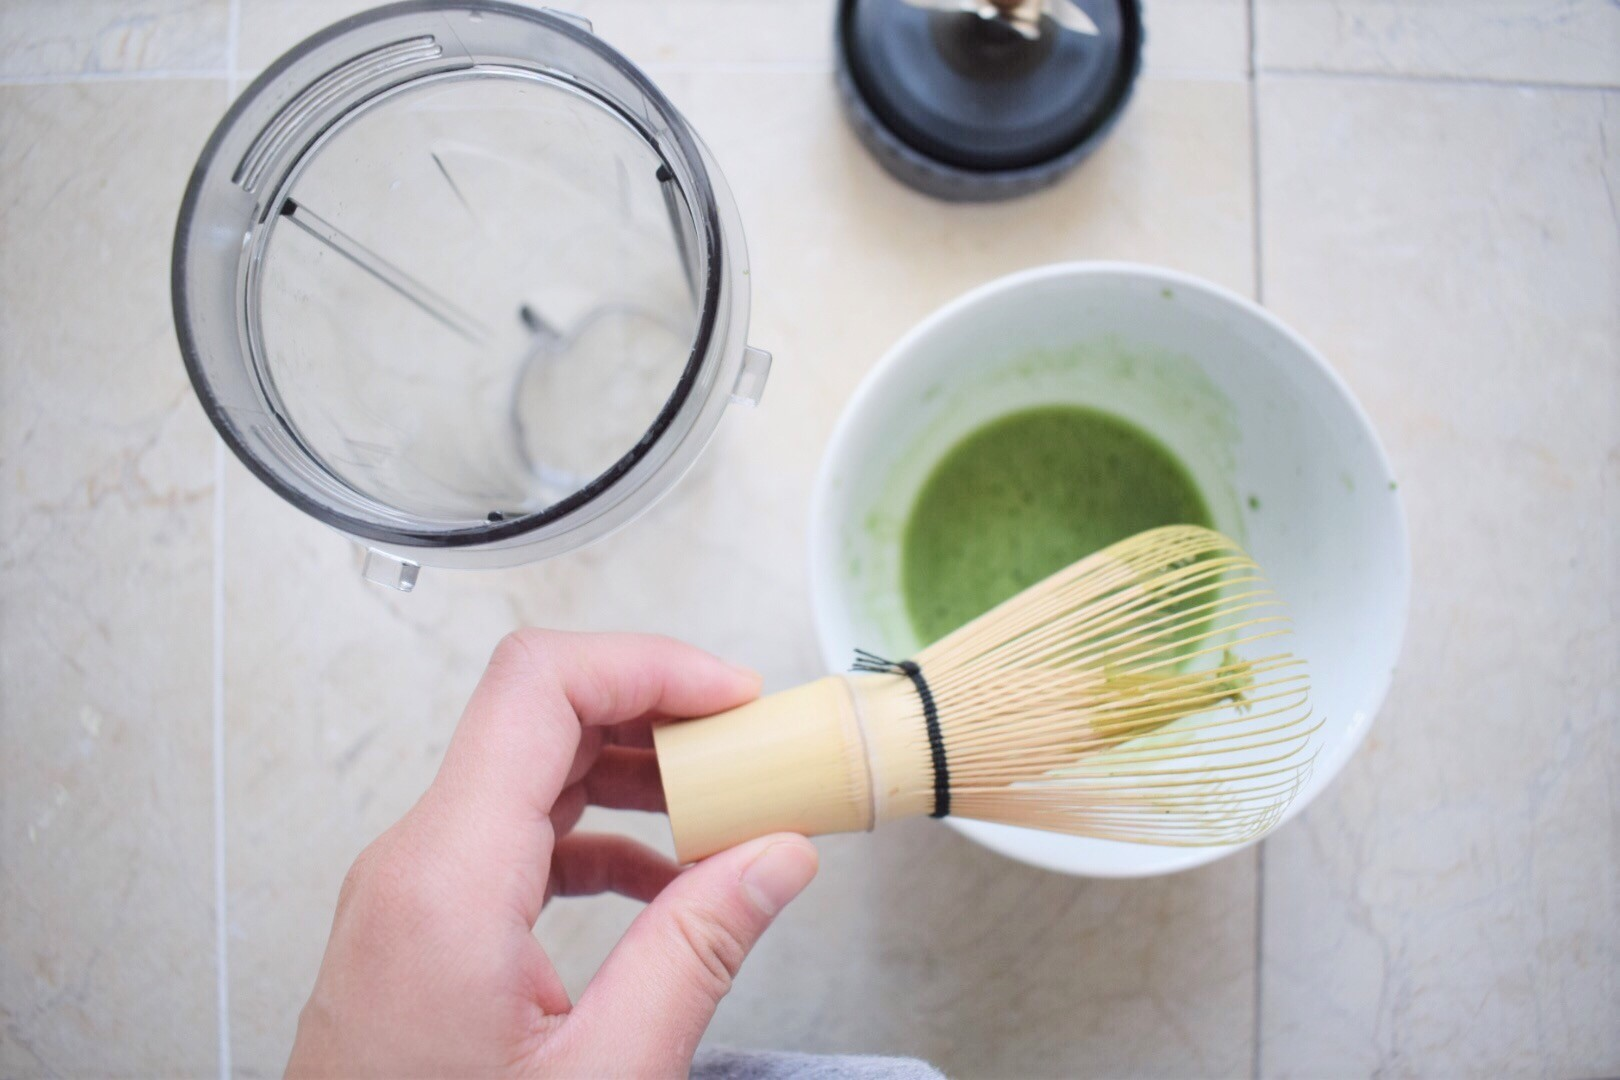 DIY Matcha Latte Drink At Home 2.jpg